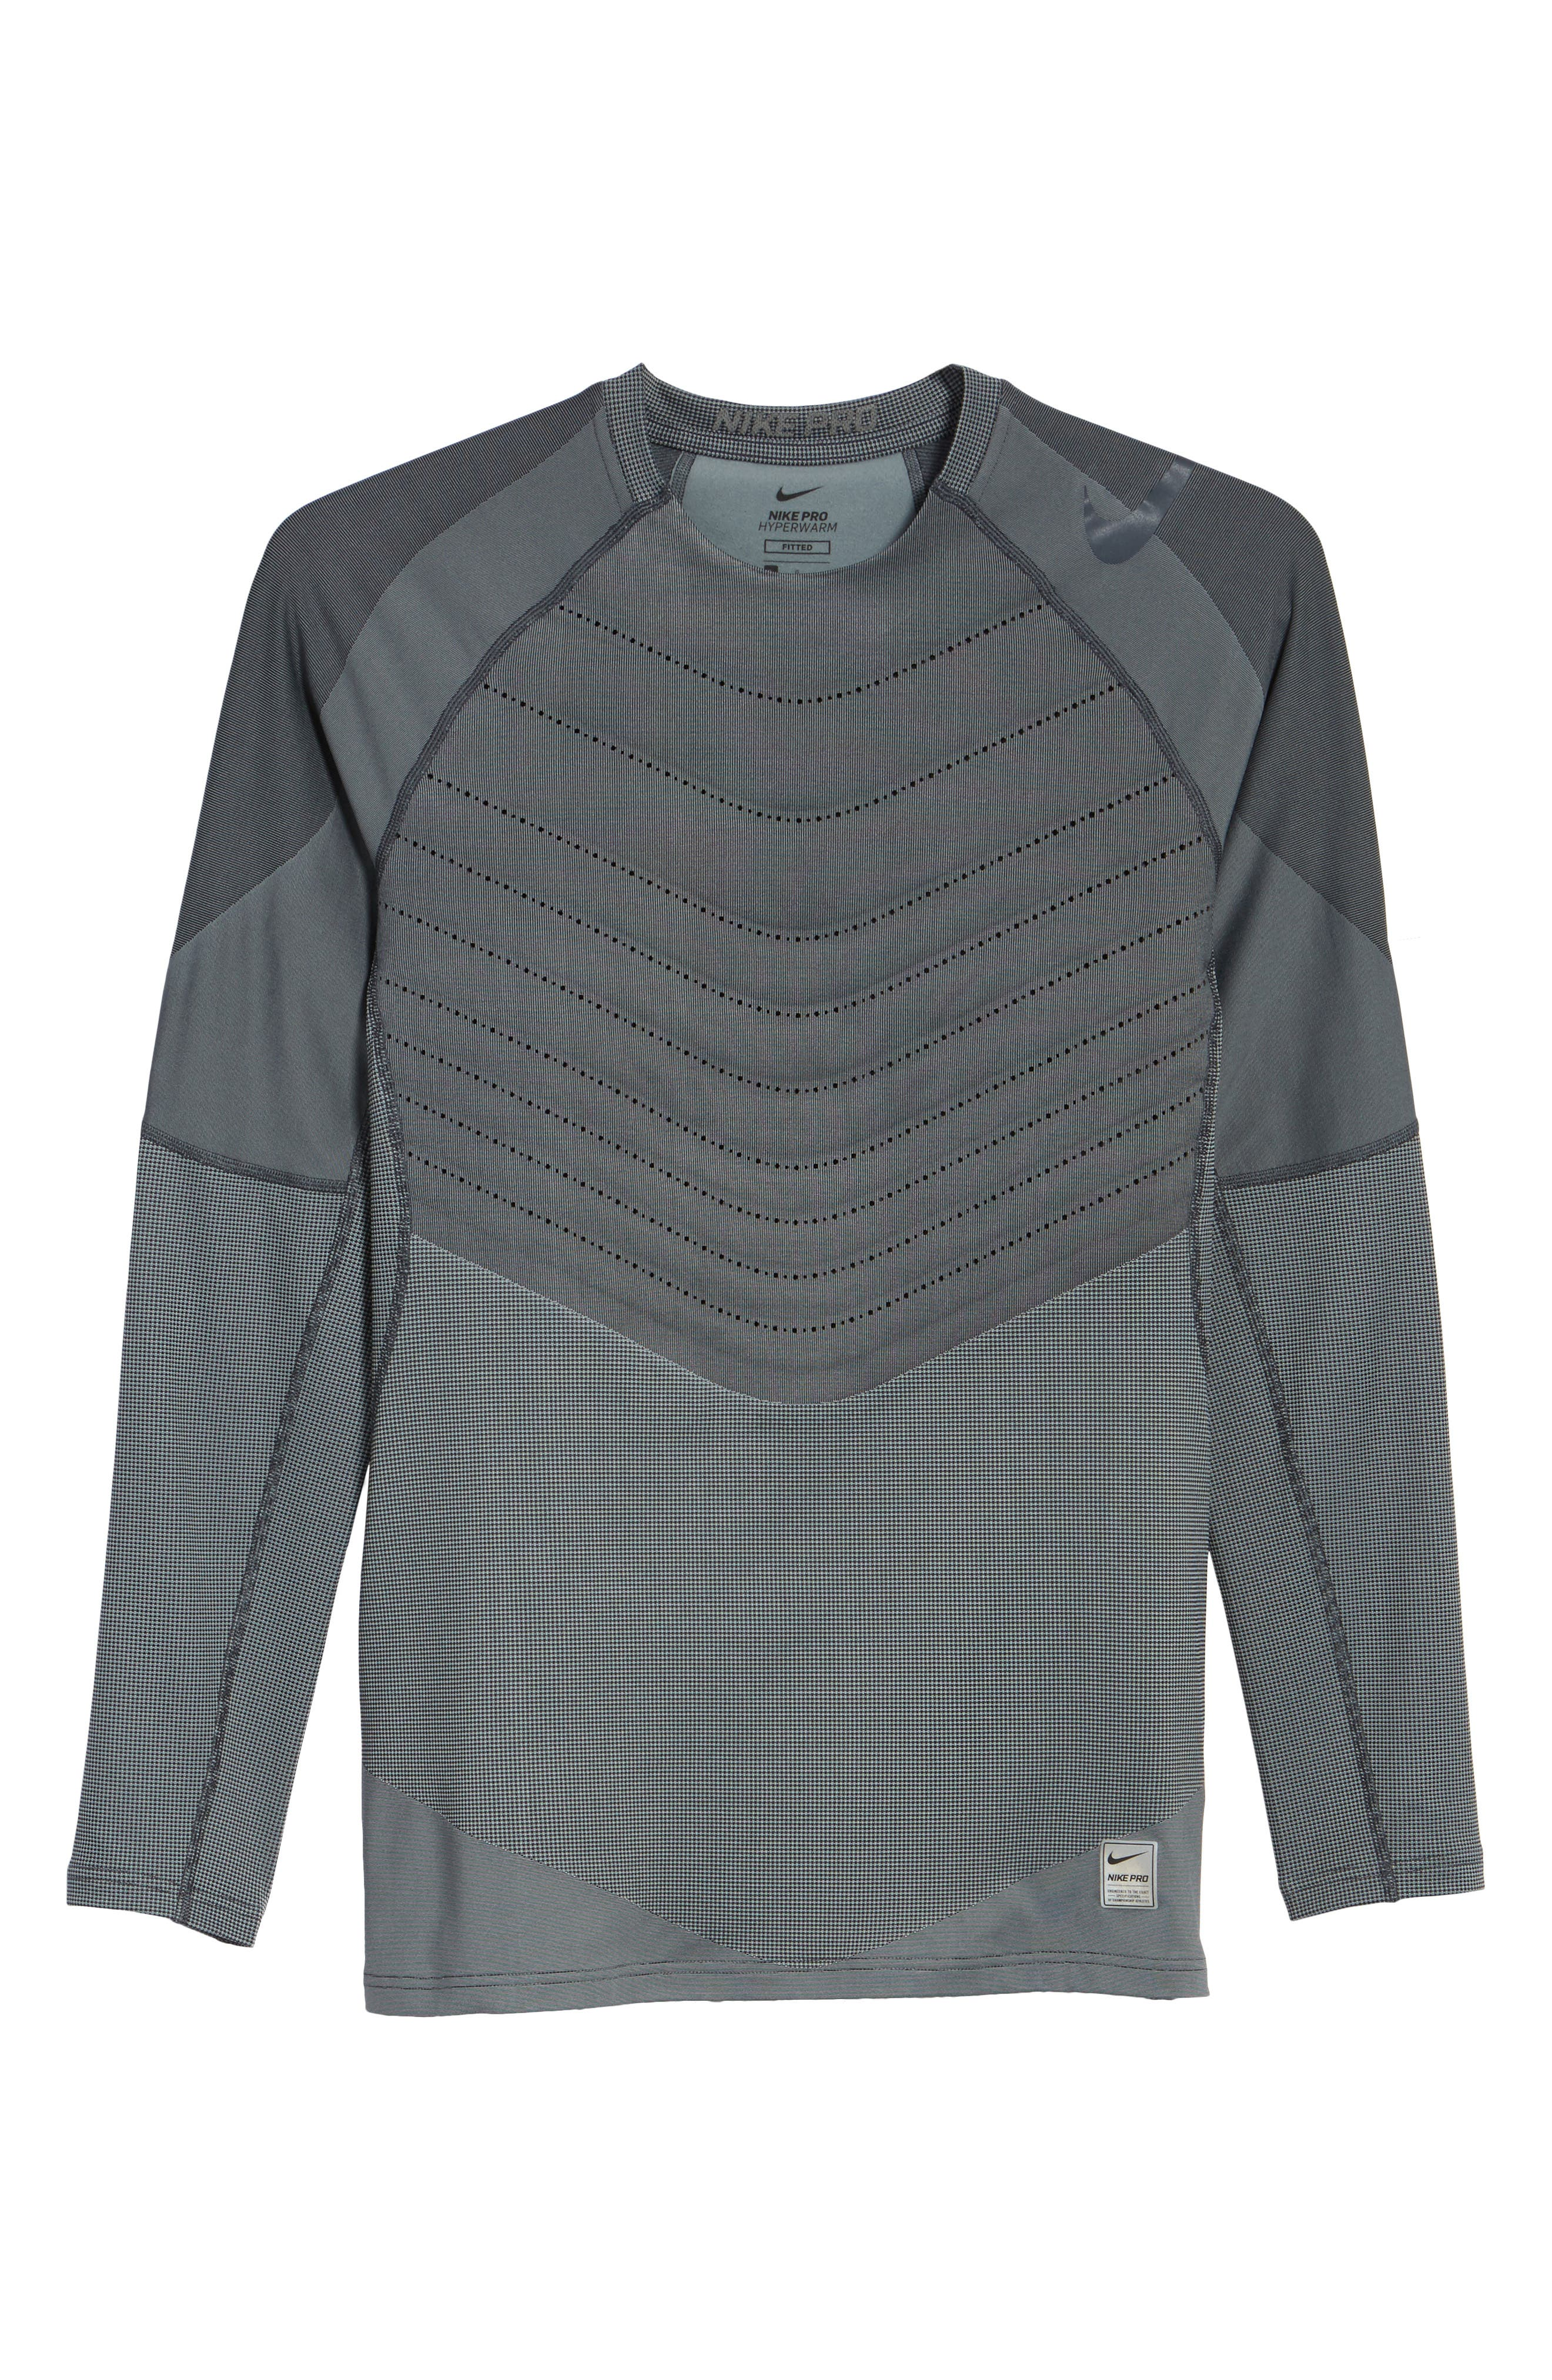 Pro AeroLoft Long Sleeve Fitted T-Shirt,                             Alternate thumbnail 6, color,                             010